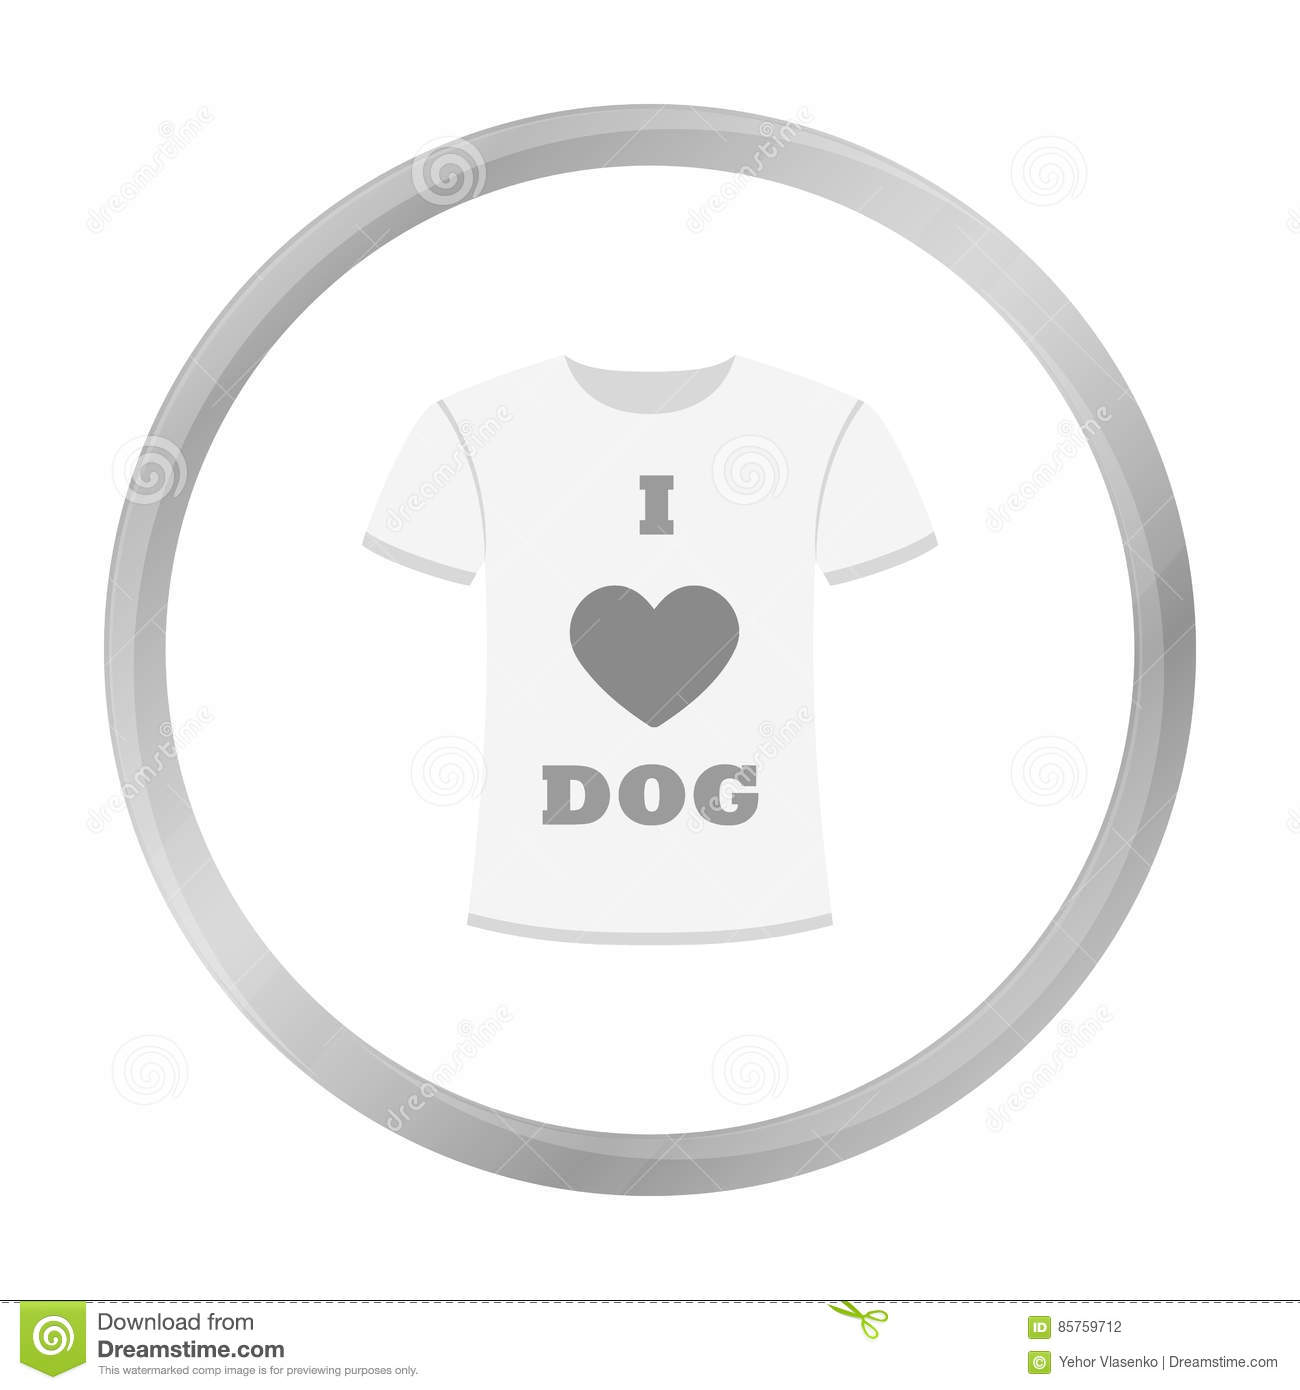 Shirt I love dogs vector icon in monochrome style for web